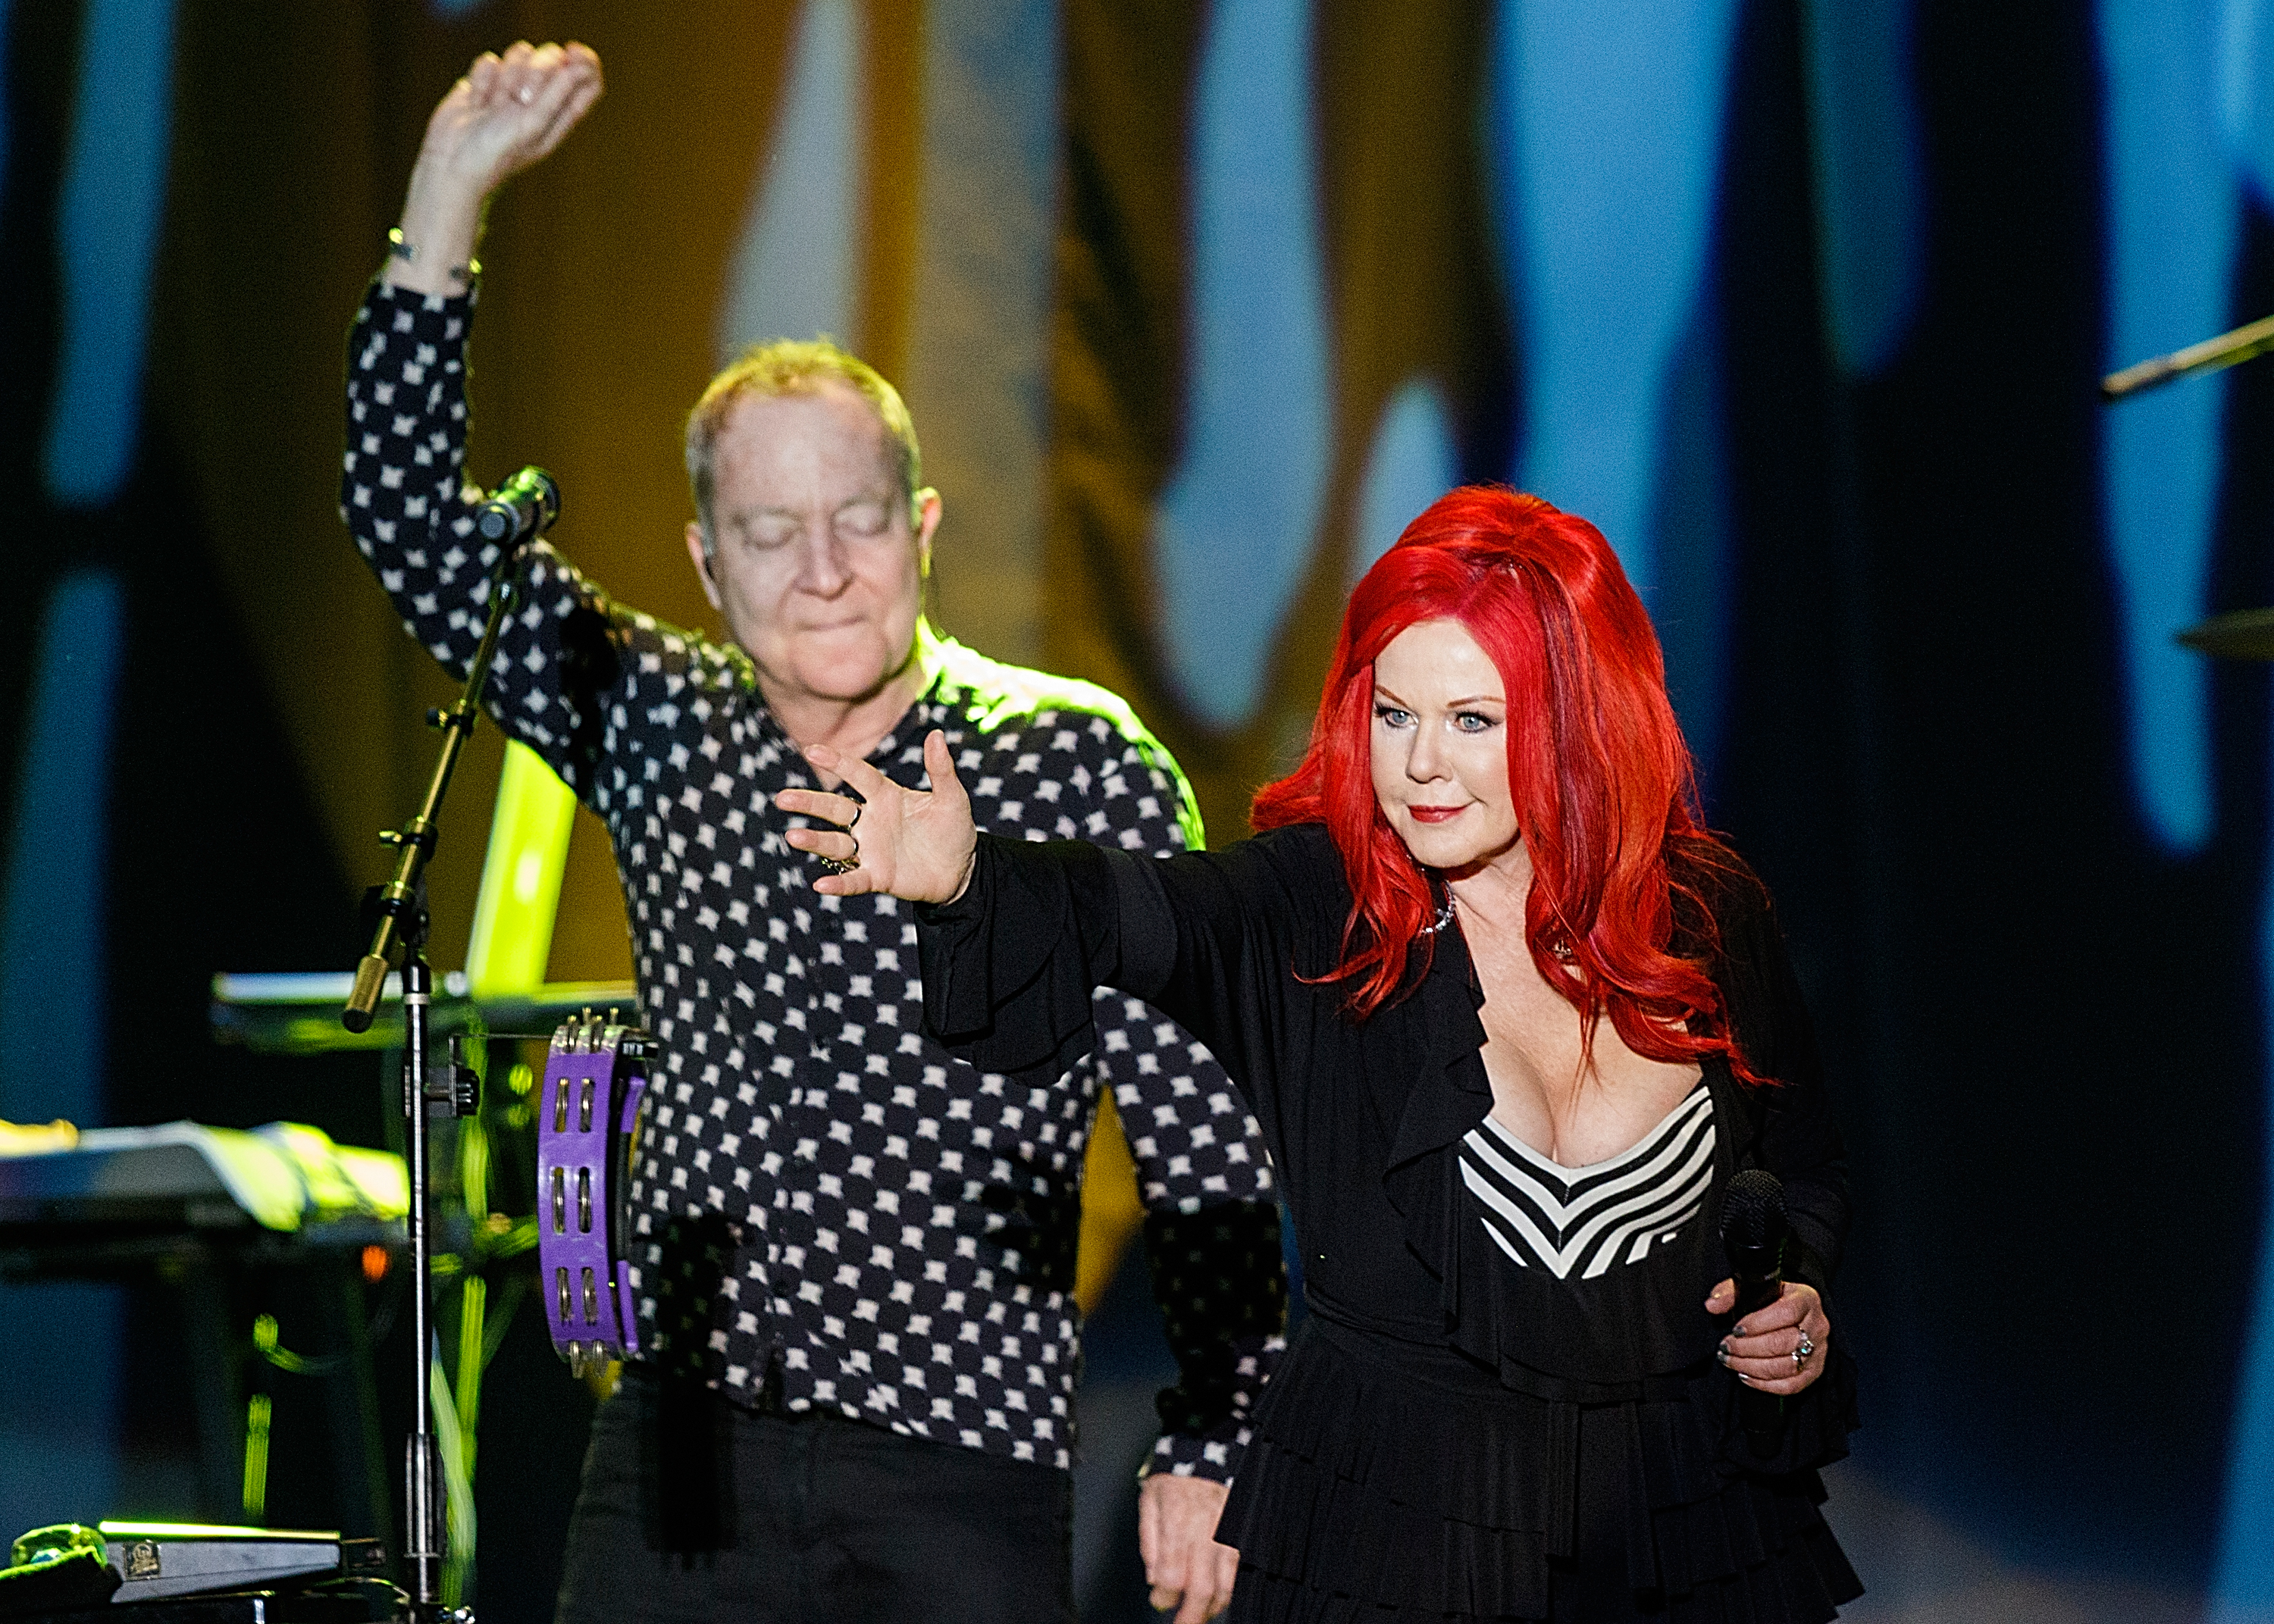 VANCOUVER, BC - AUGUST 30:  (L-R) Fred Schneider and Kate Pierson of The B-52s perform on stage during Summer NIght Concert Series at PNE Amphitheatre on August 30, 2017 in Vancouver, Canada.  (Photo by Andrew Chin/Getty Images)